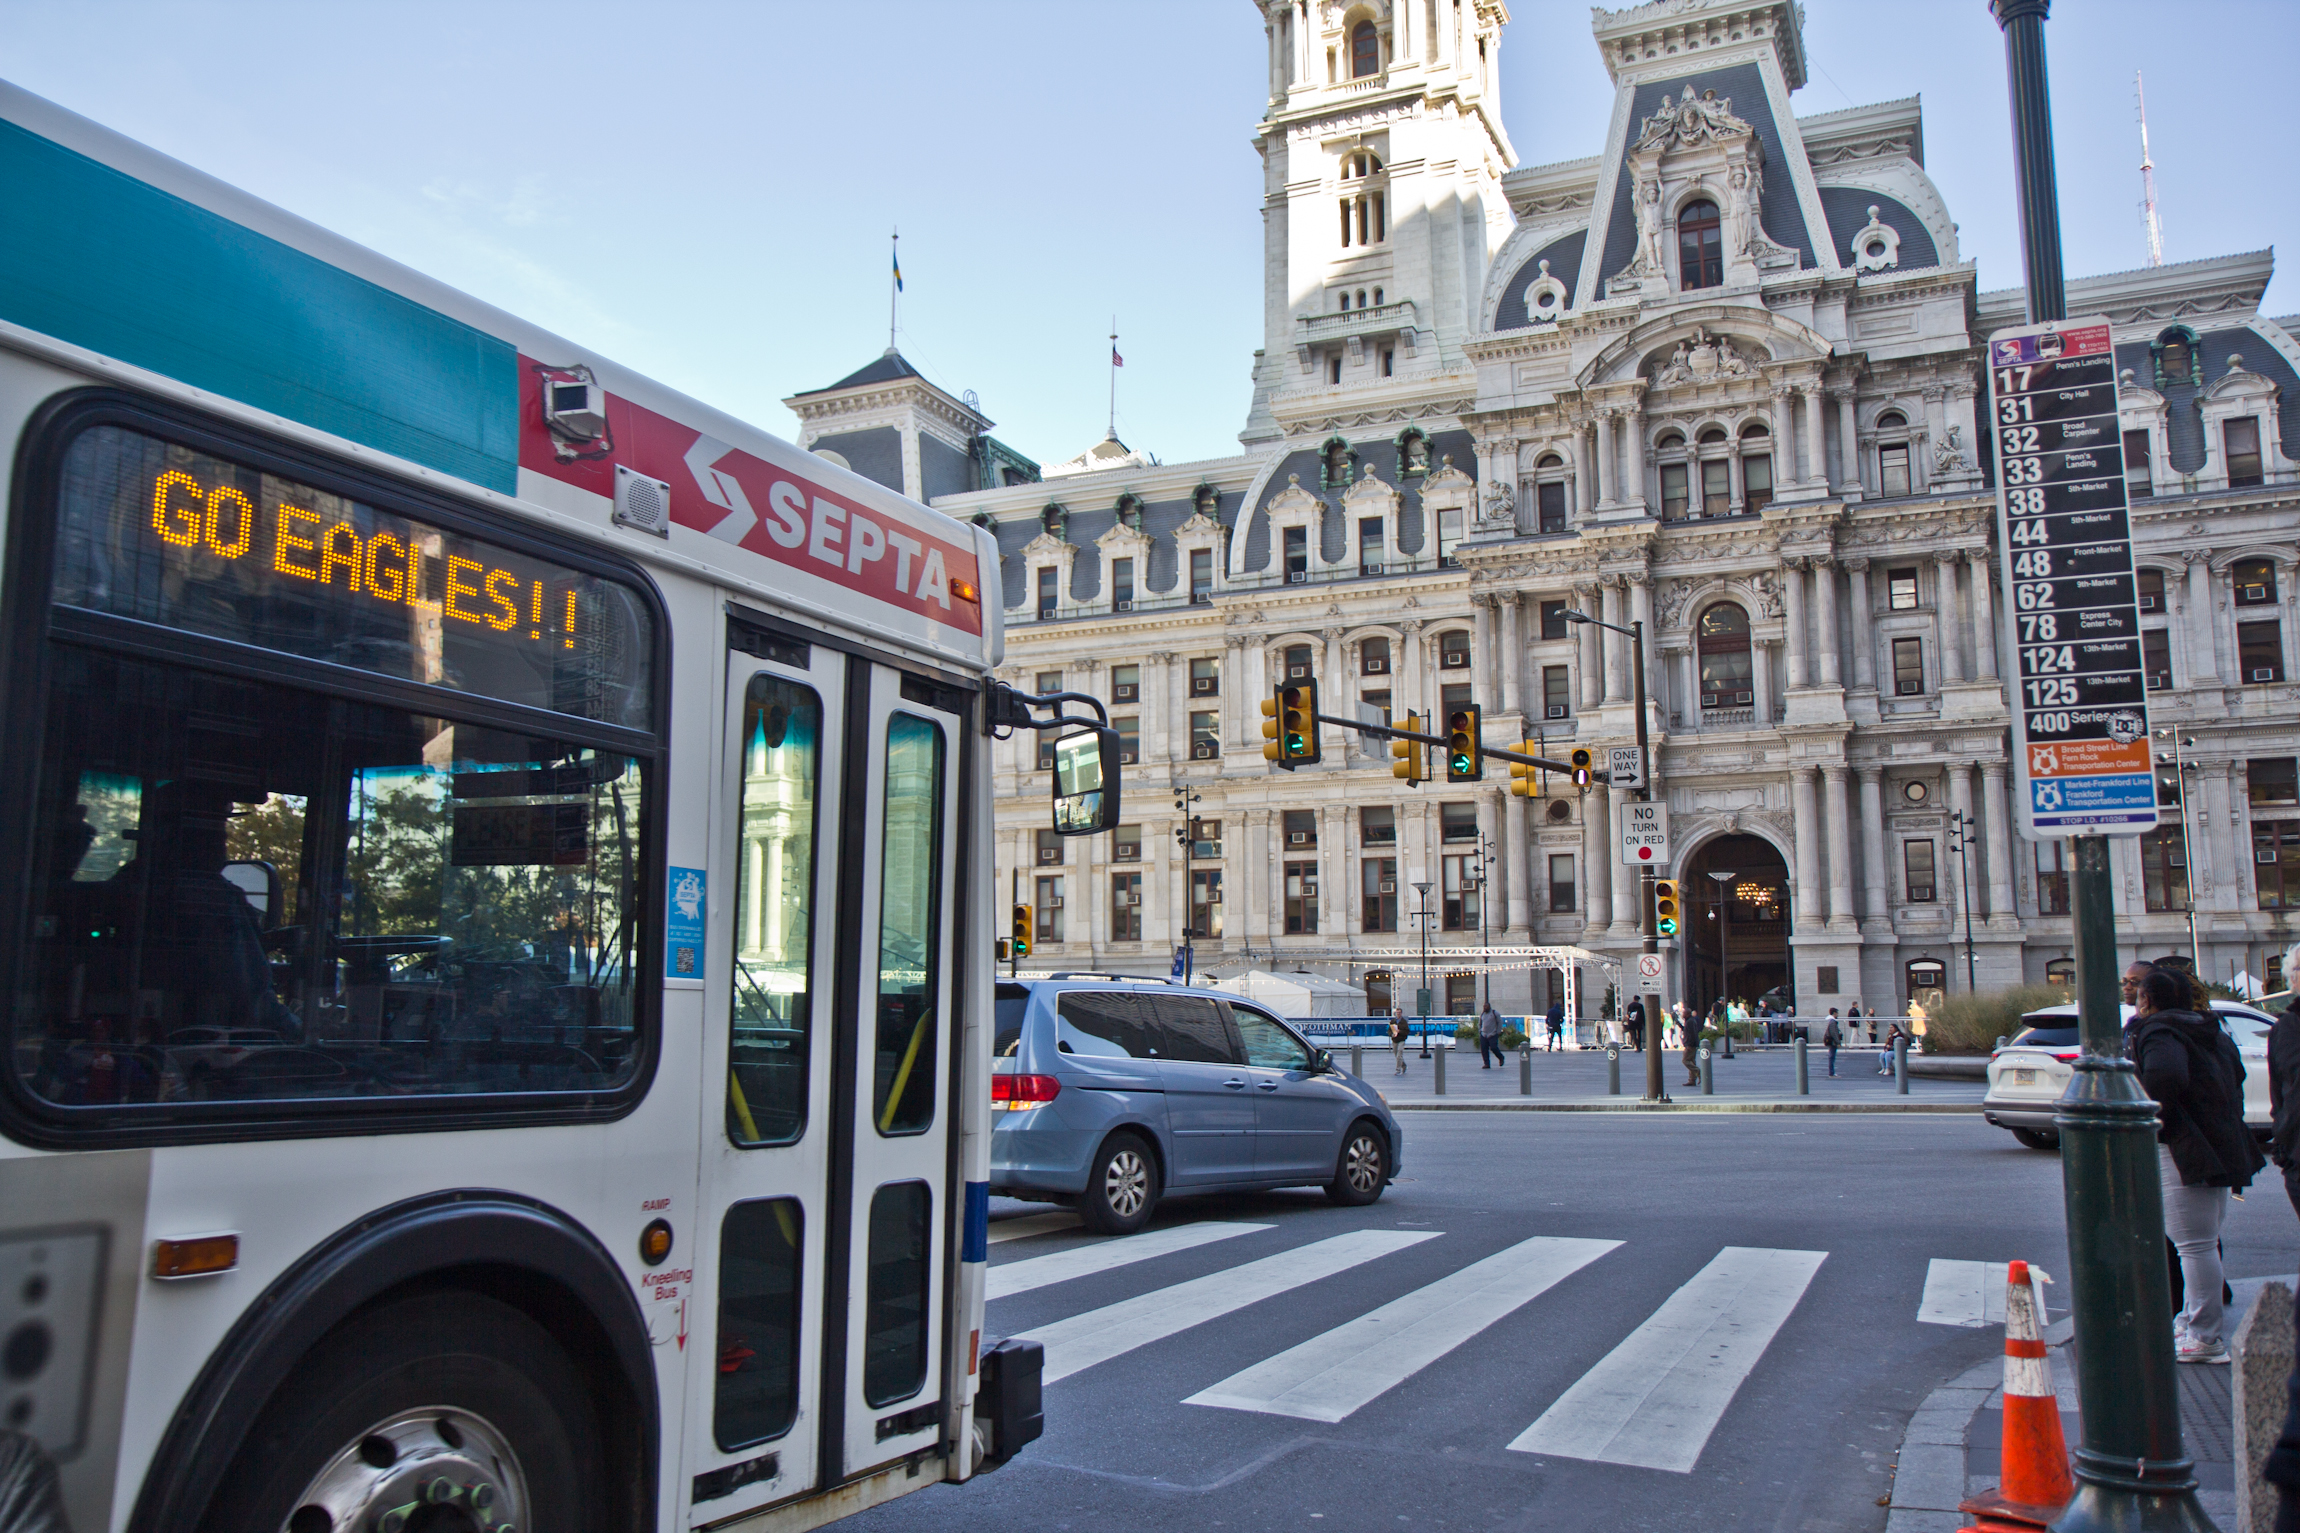 Septa Gives Buses A Head Start With Queue Jumping Whyy